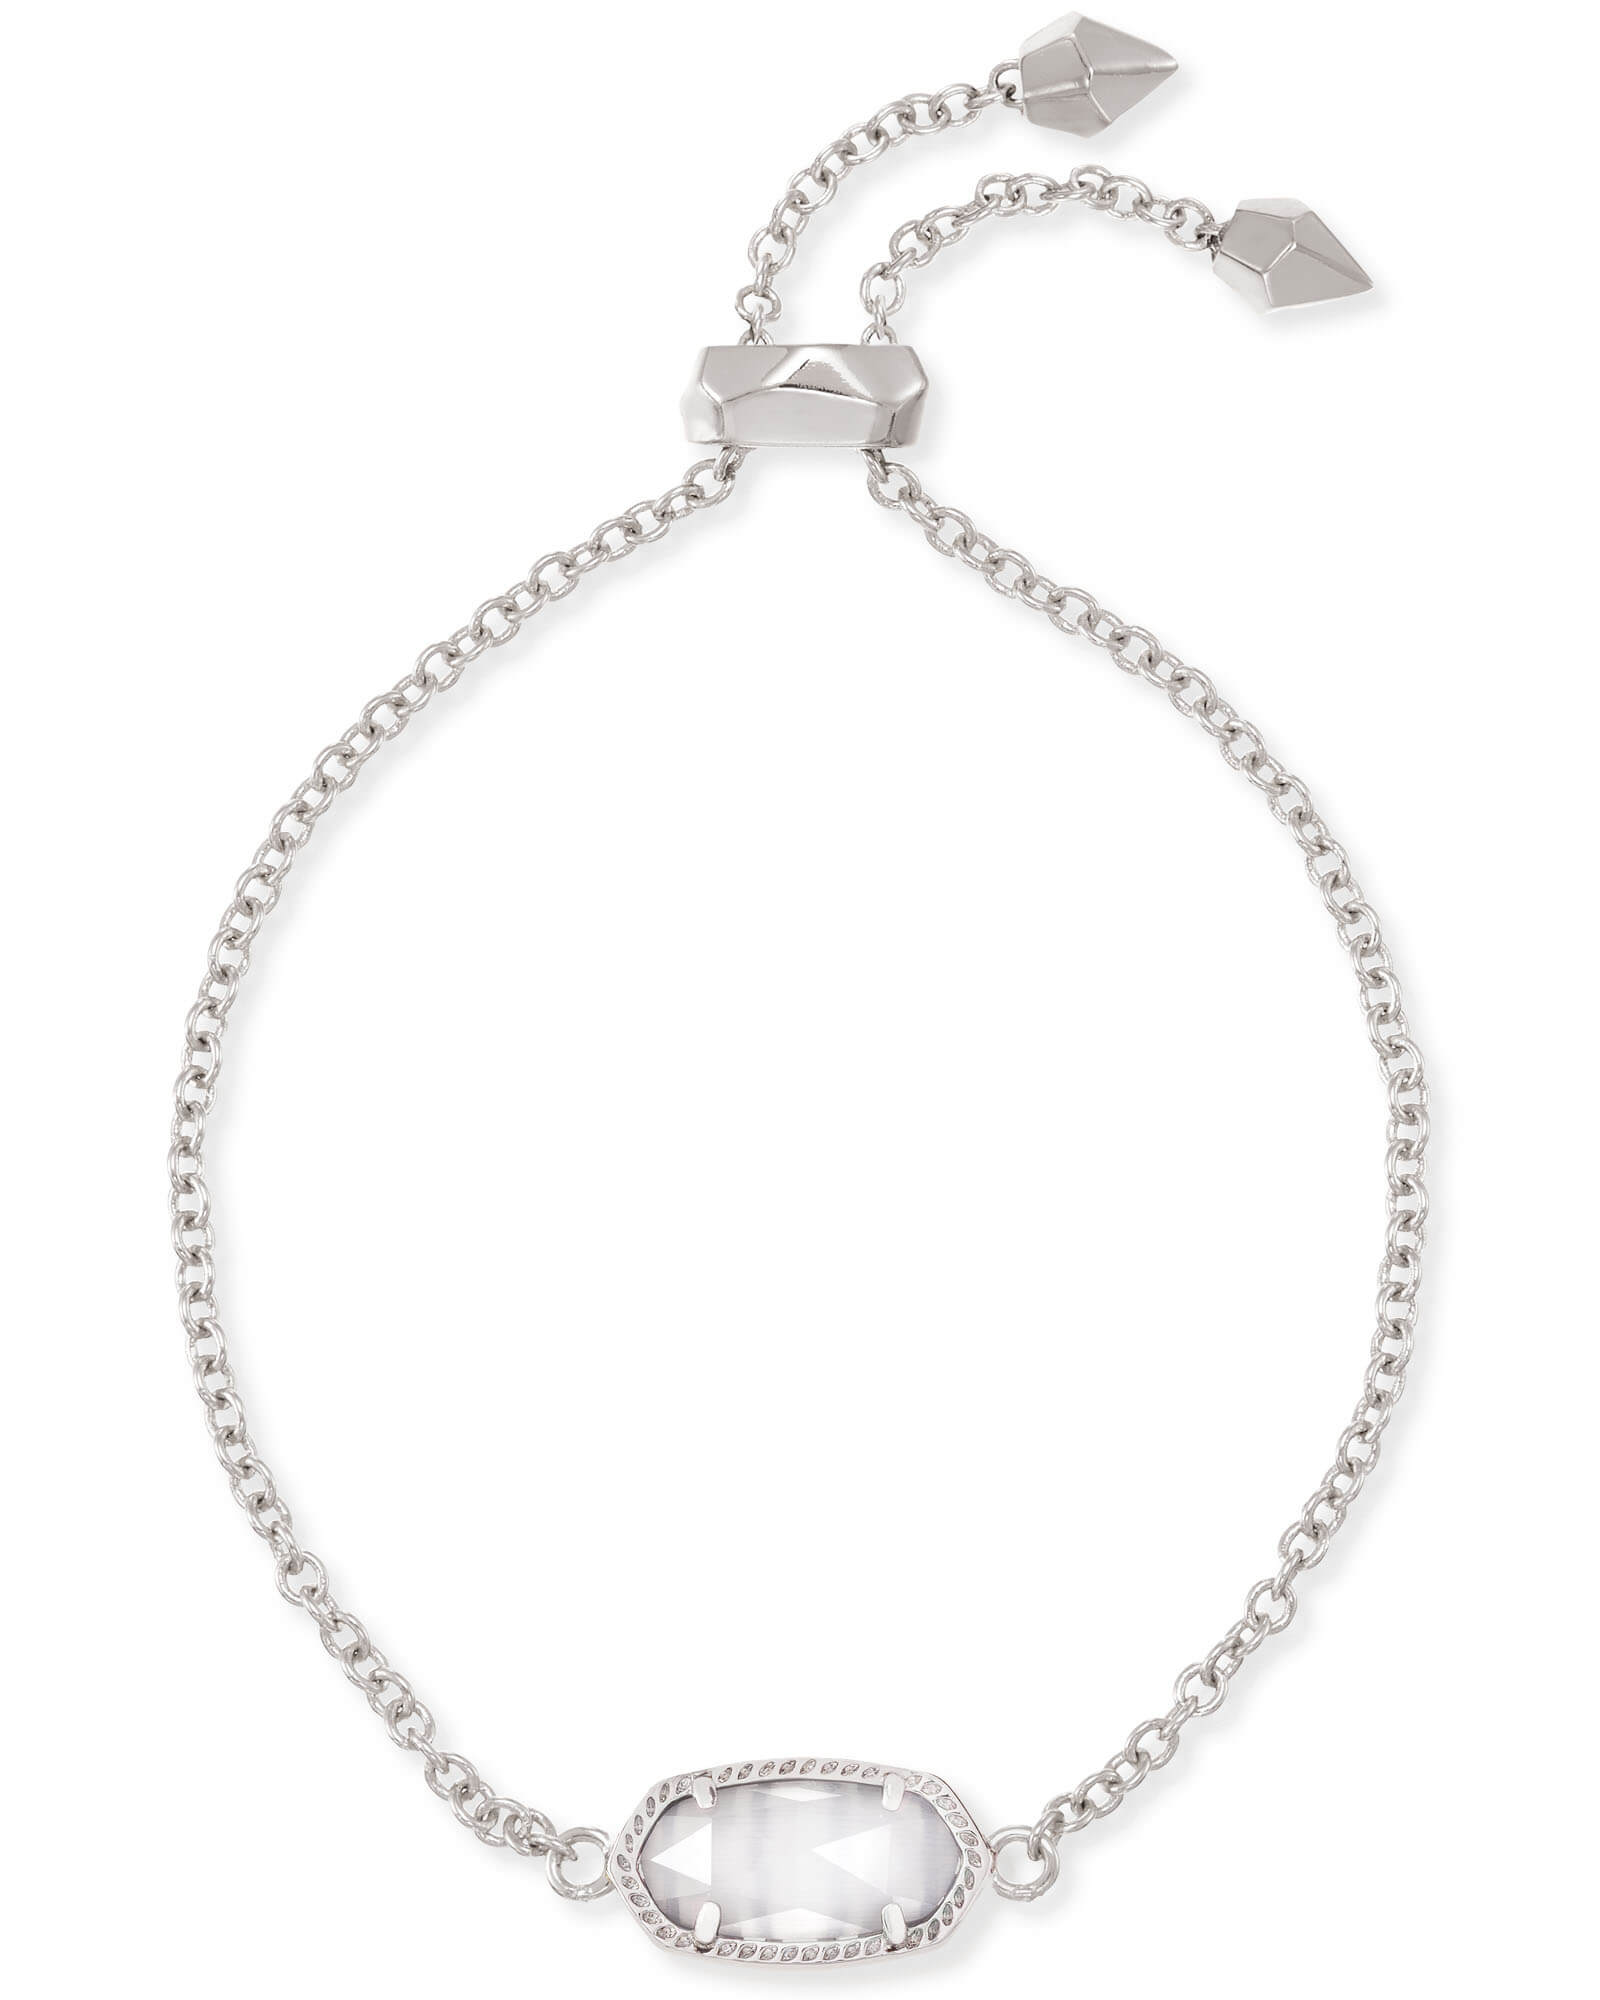 Elaina Silver Adjustable Chain Bracelet in Slate